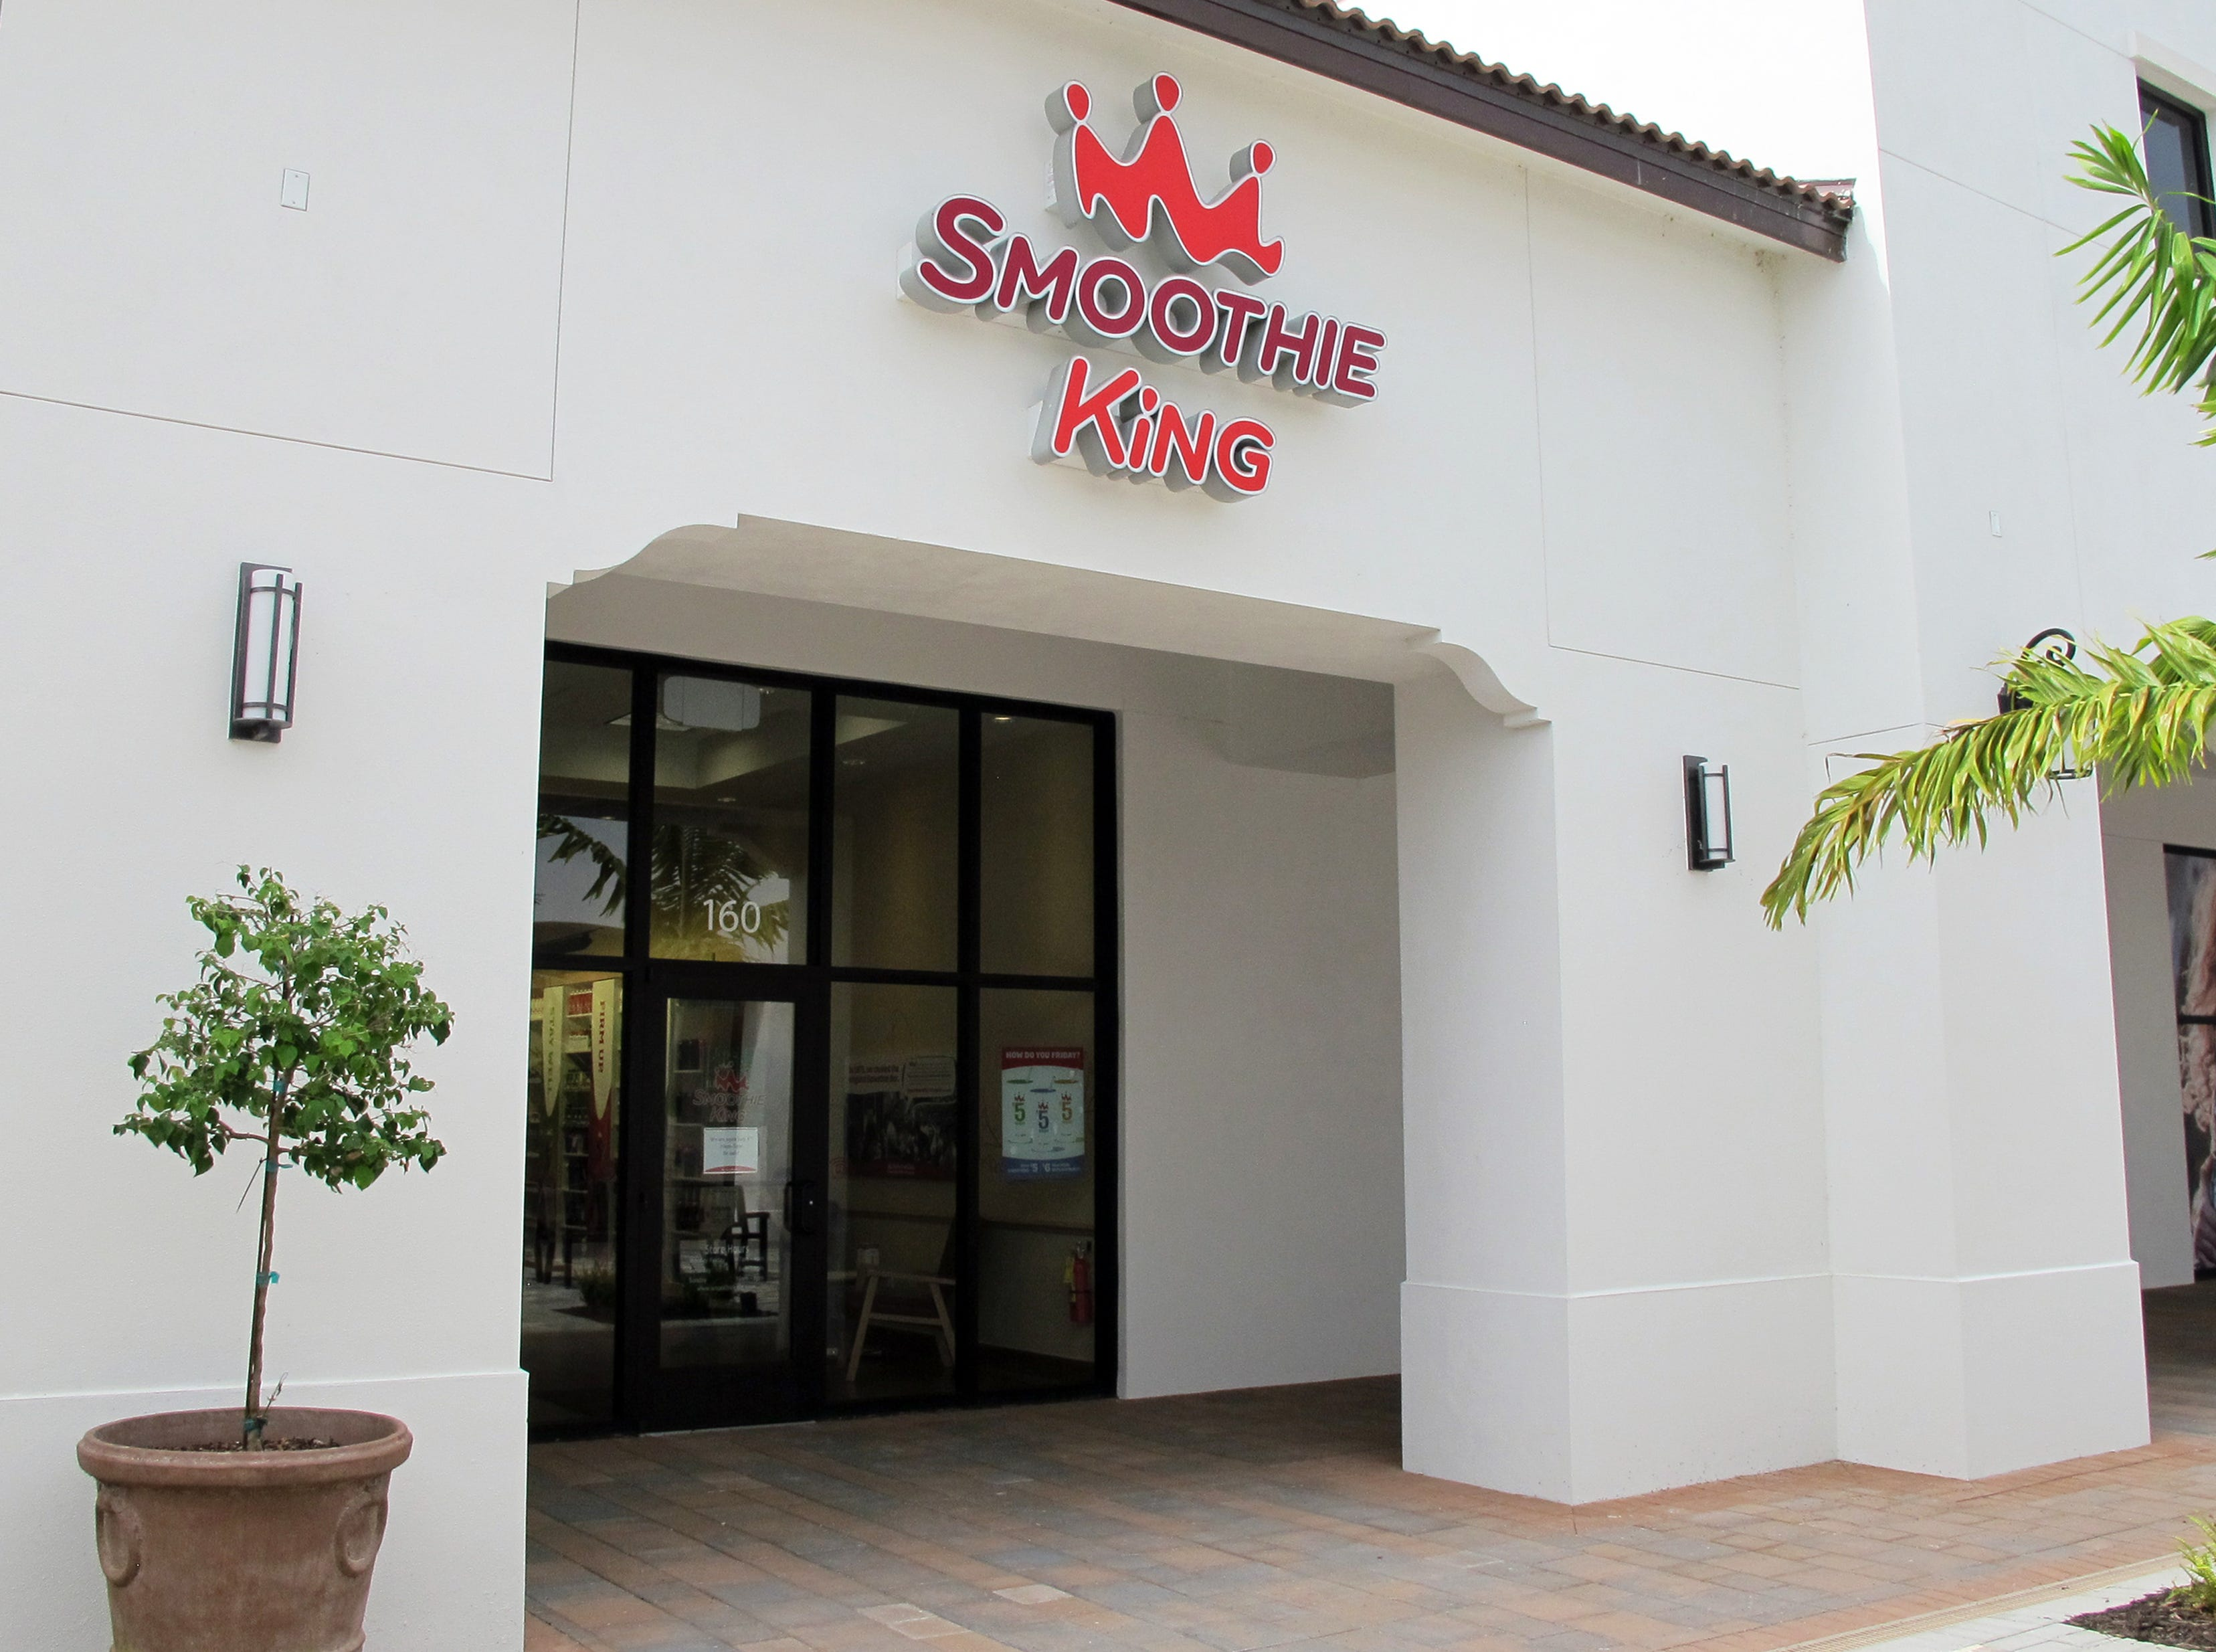 Smoothie King opened another area franchise in 2018 in the new University Village shops on Ben Hill Griffin Parkway near Florida Gulf Coast University.